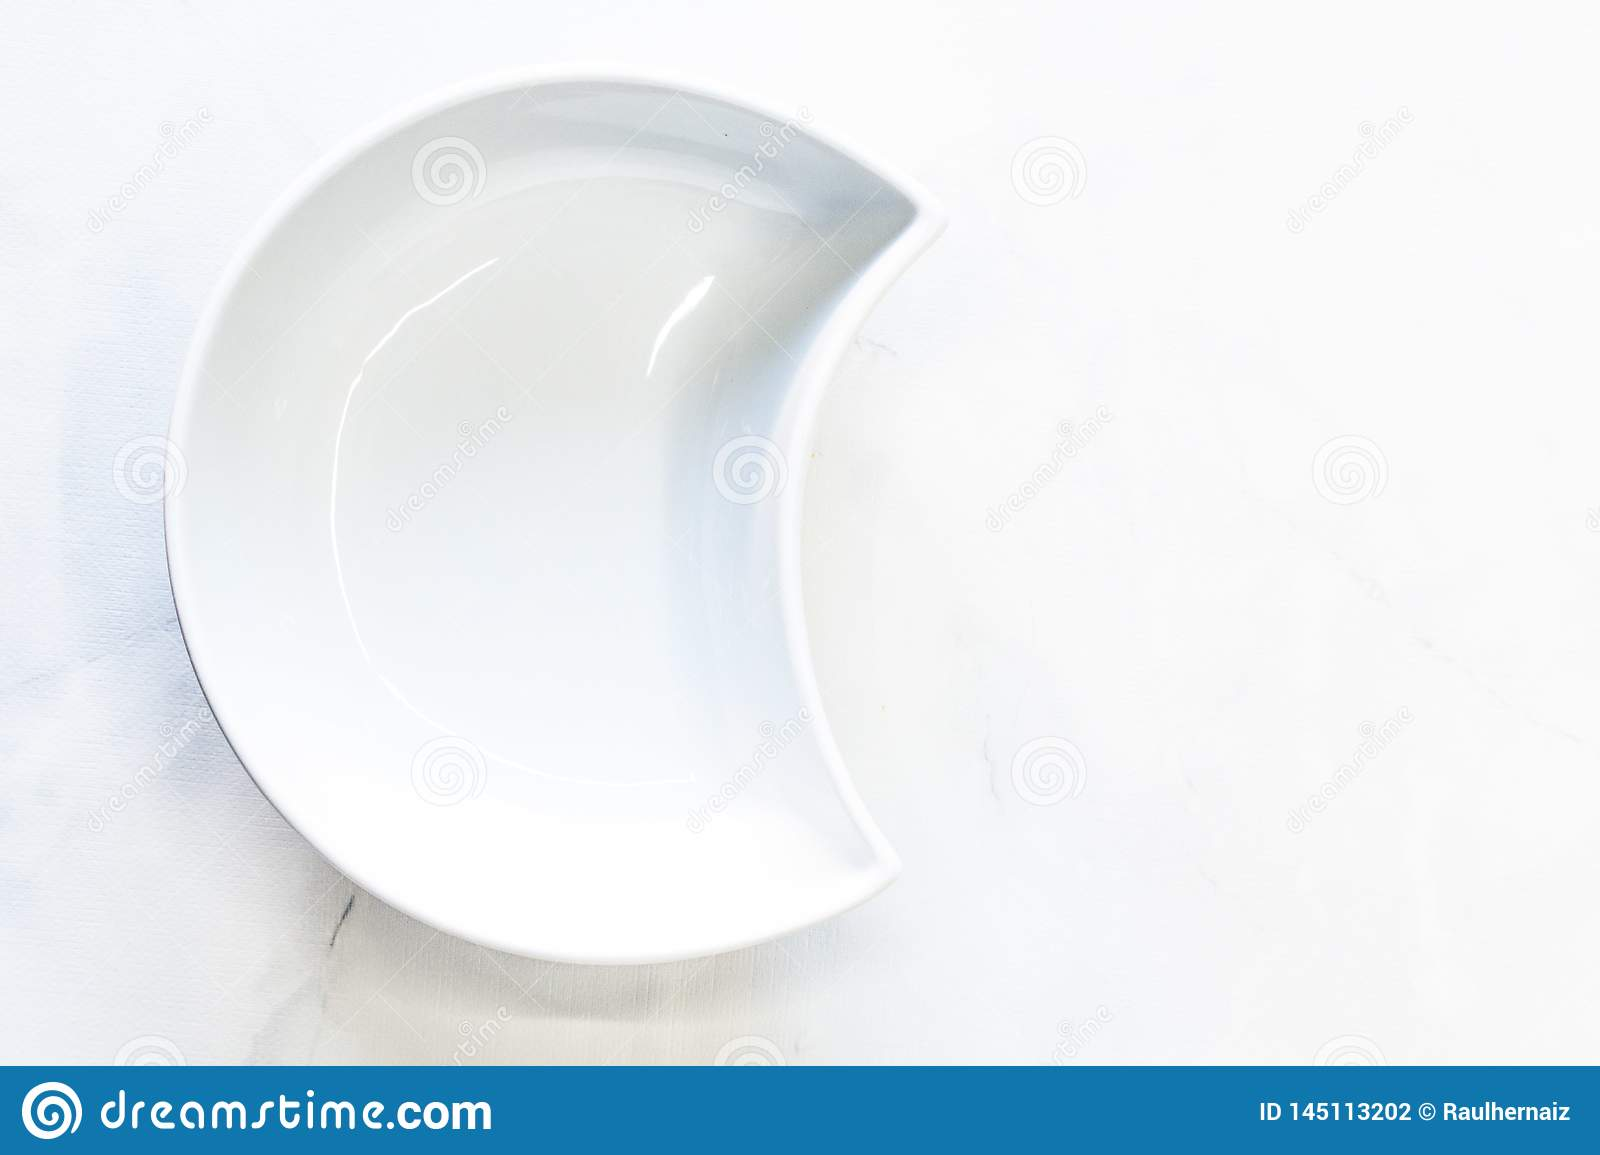 White bowl in the shape of a half-moon. Top view, space for text